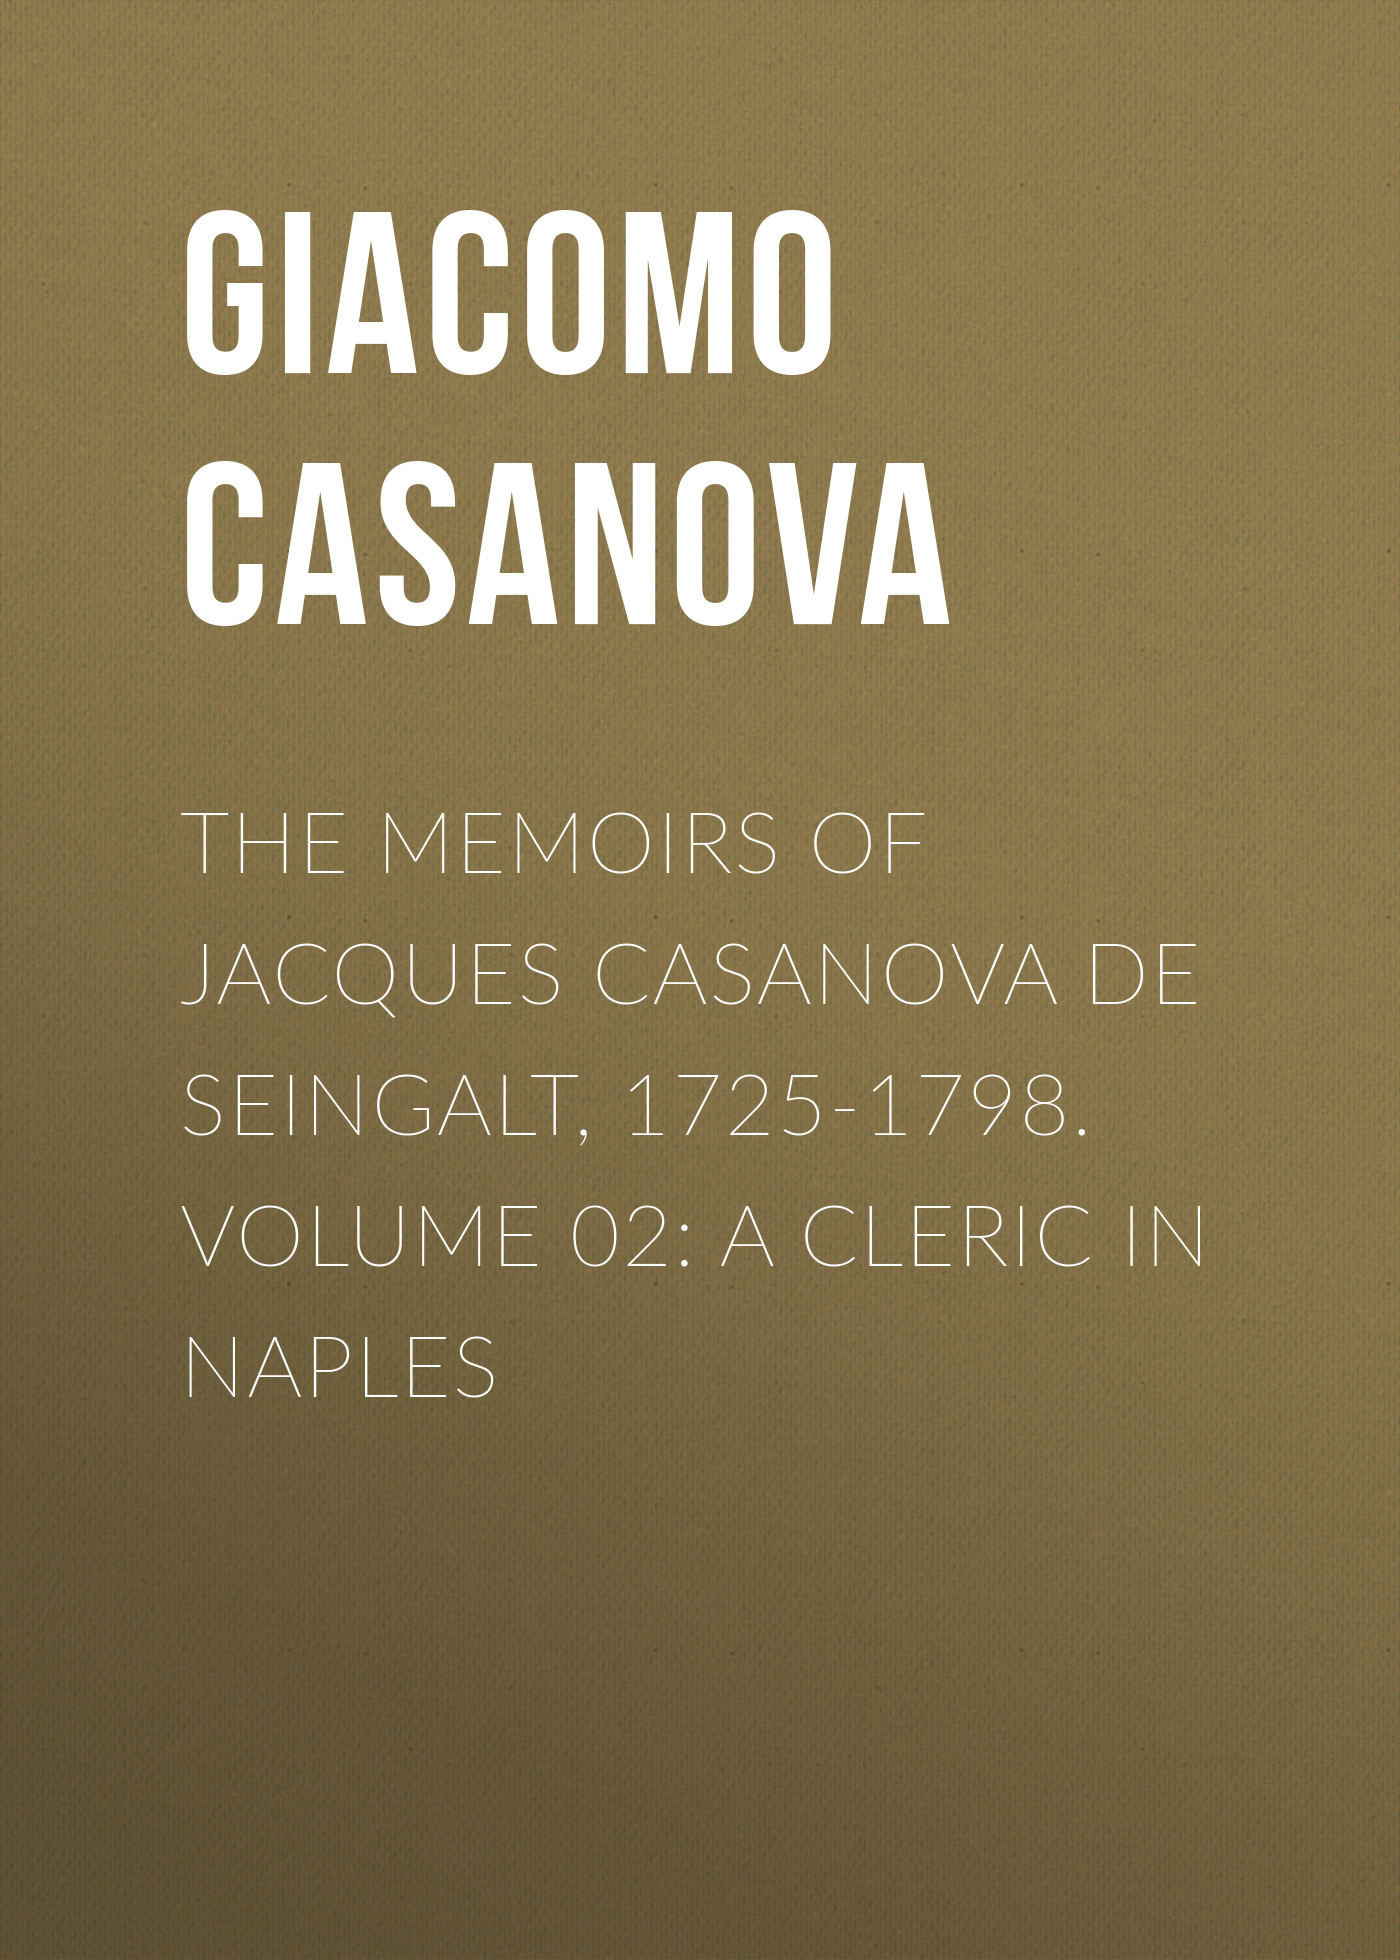 Giacomo Casanova The Memoirs of Jacques Casanova de Seingalt, 1725-1798. Volume 02: a Cleric in Naples walter de la mare memoirs of a midget